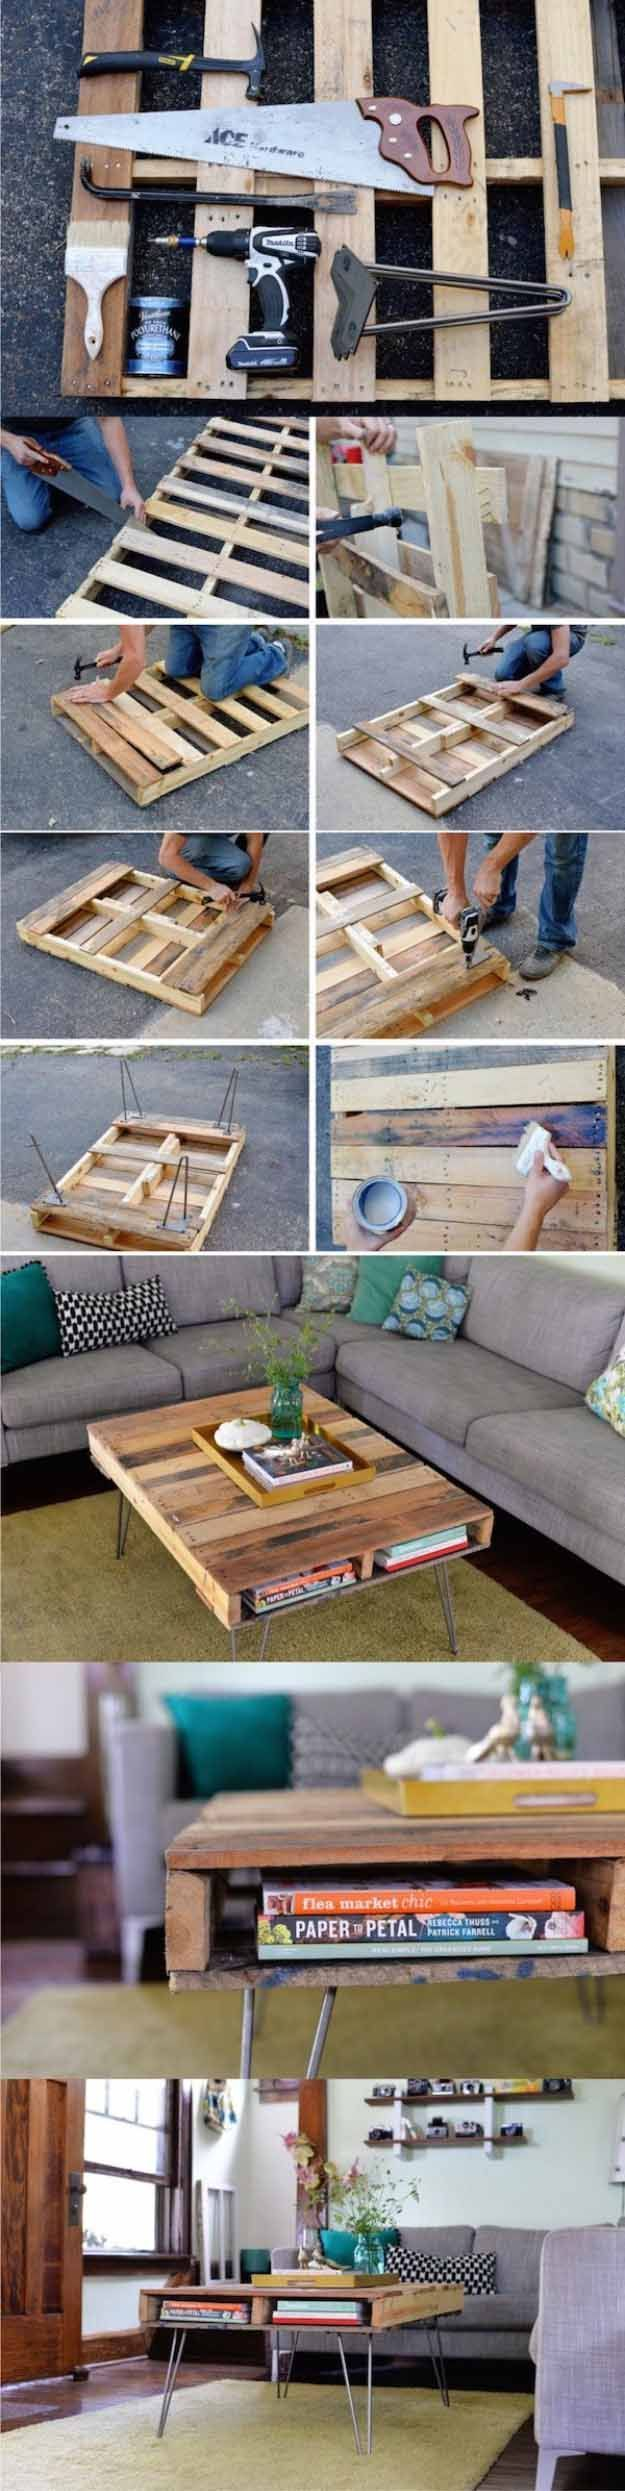 Best 25+ Cheap Furniture Online Ideas On Pinterest | Cheap Home Decor  Online, Woodworking Coffee Table Ideas And Procedural Programming